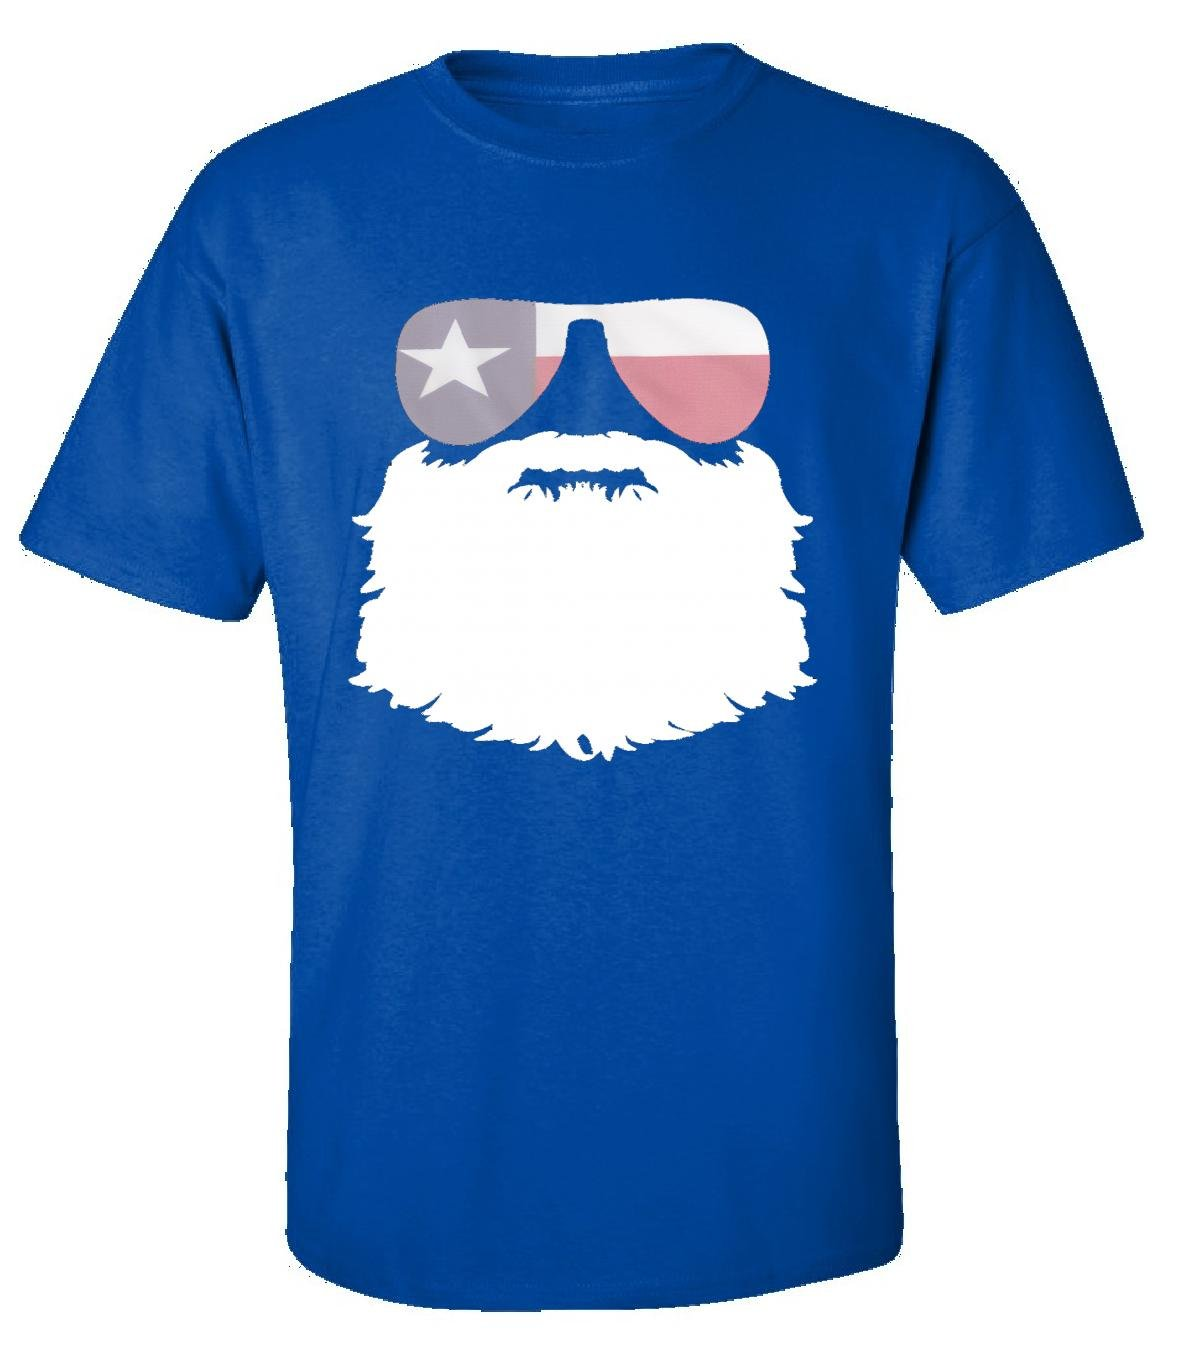 November Beard Mustache Month Texas With Sunglasses - Adult Shirt S Royal